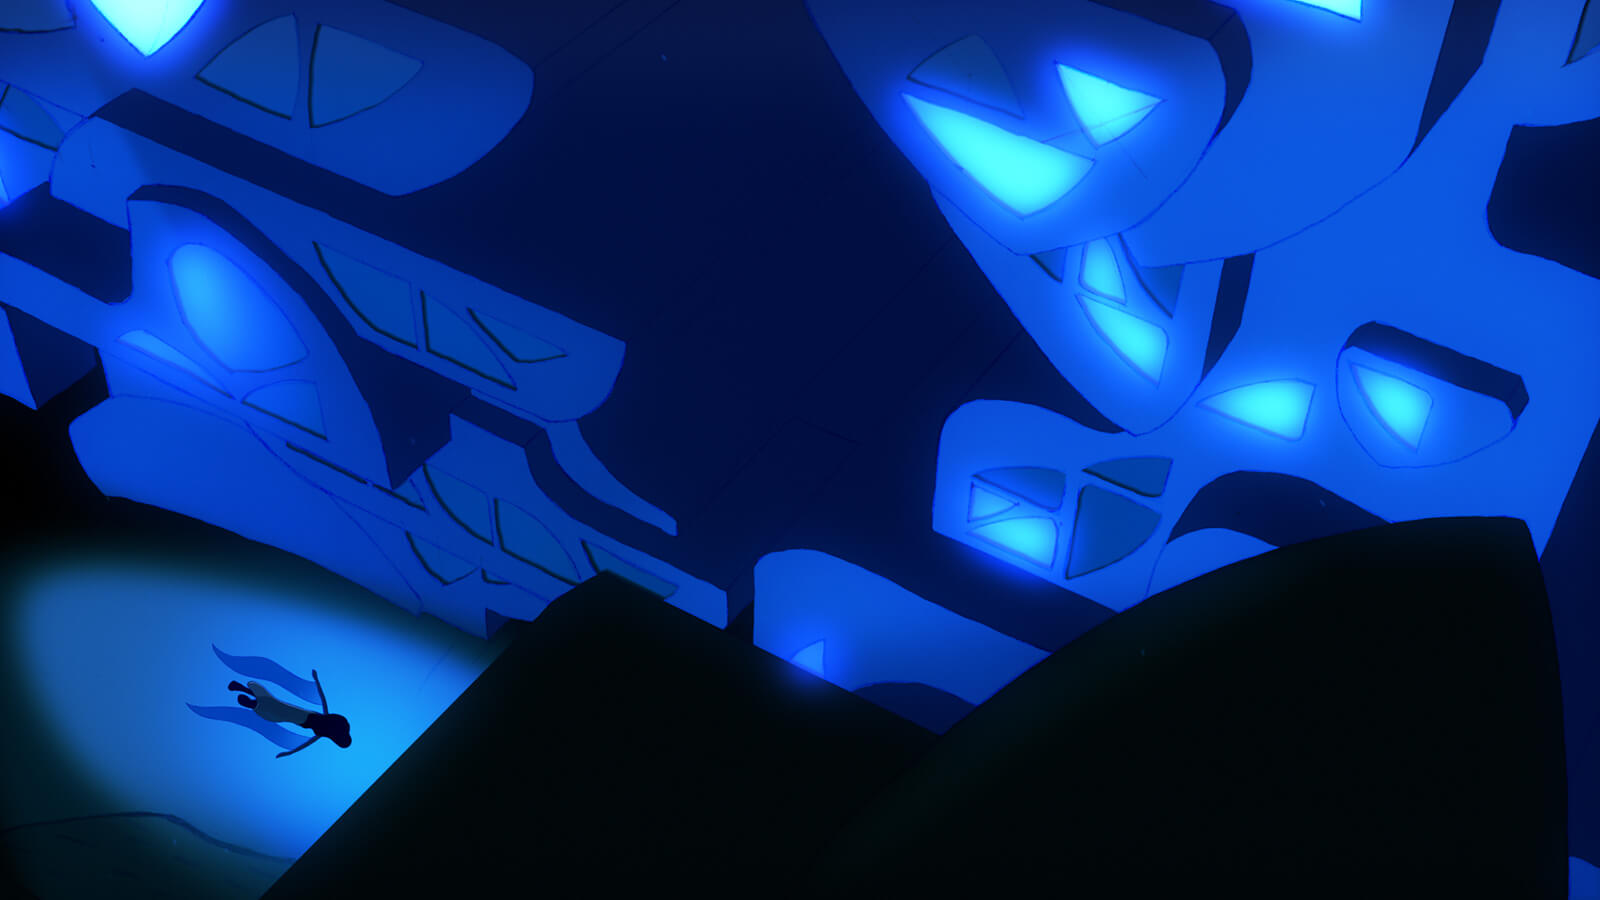 A human figure is seen swimming underwater through a canyon of dark blue shapes, some displaying glowing panels of light